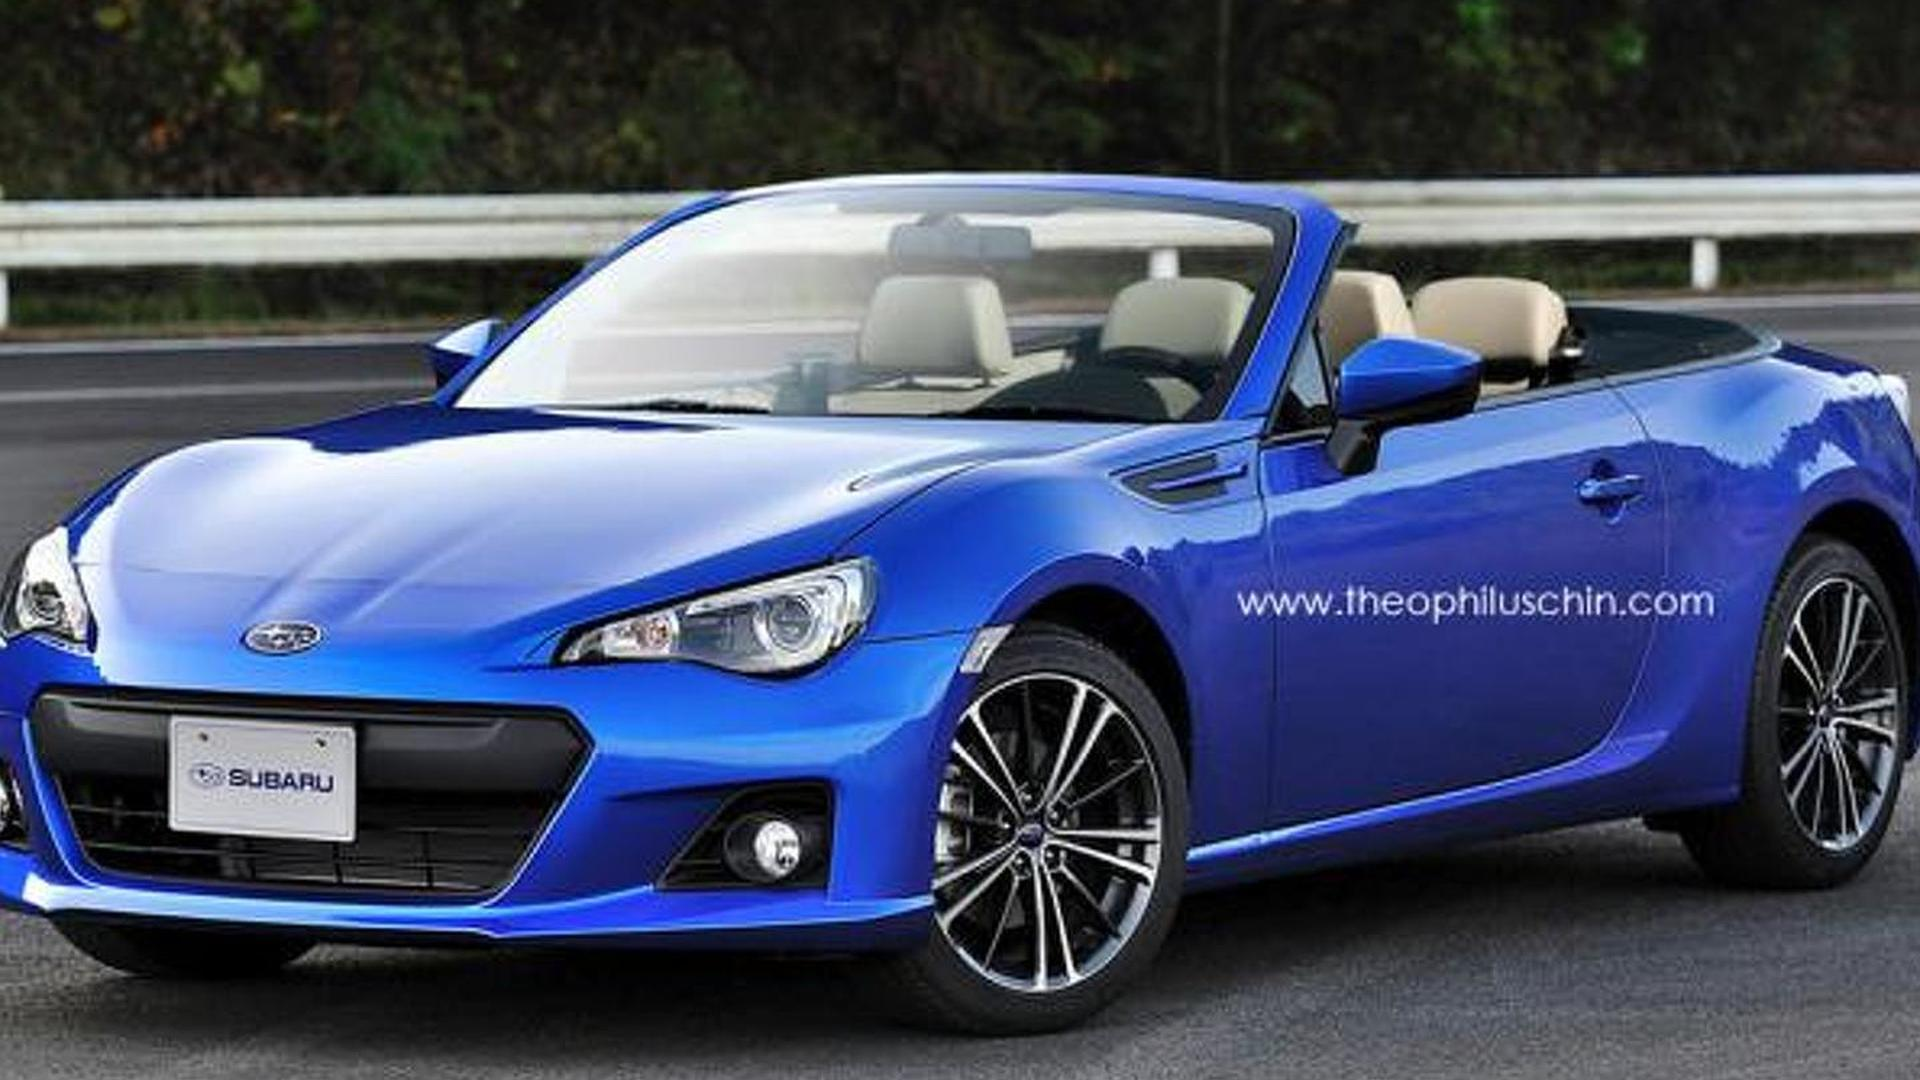 Subaru confirms AWD Twin Turbo Convertible two seater Diesel Hybrid BRZ